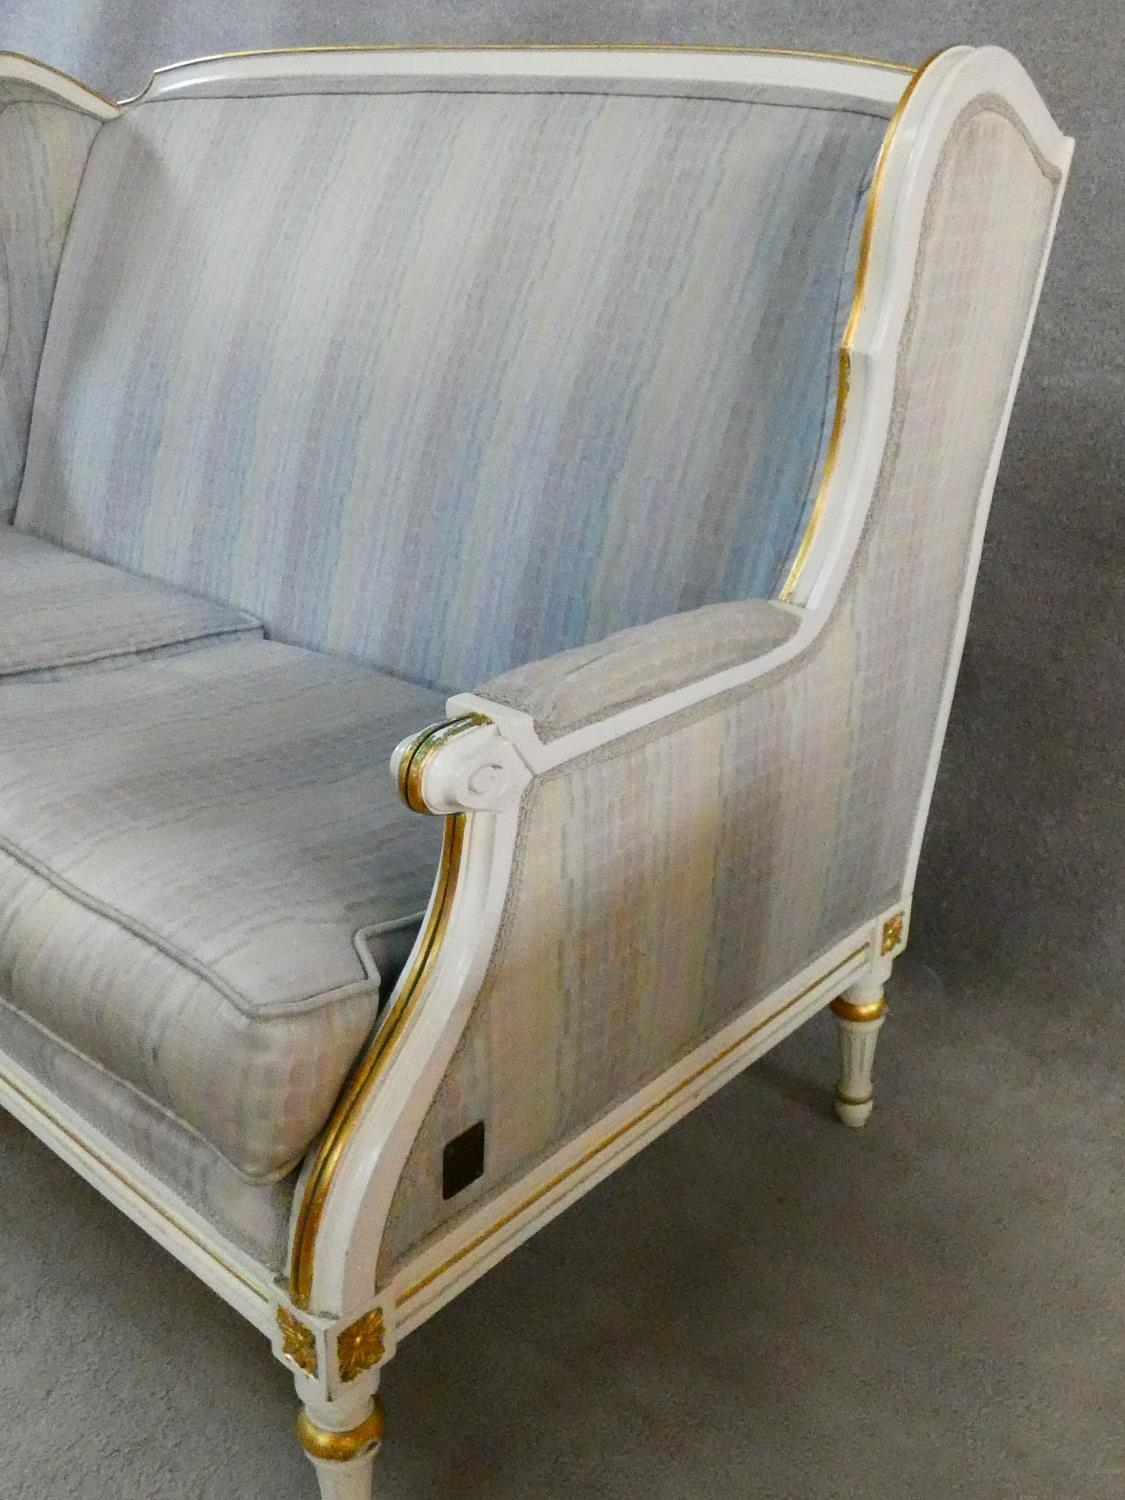 A Louis XVI style gilt and with painted two seater sofa in pale damask upholstery. H.93 L.136 D.77cm - Image 5 of 20